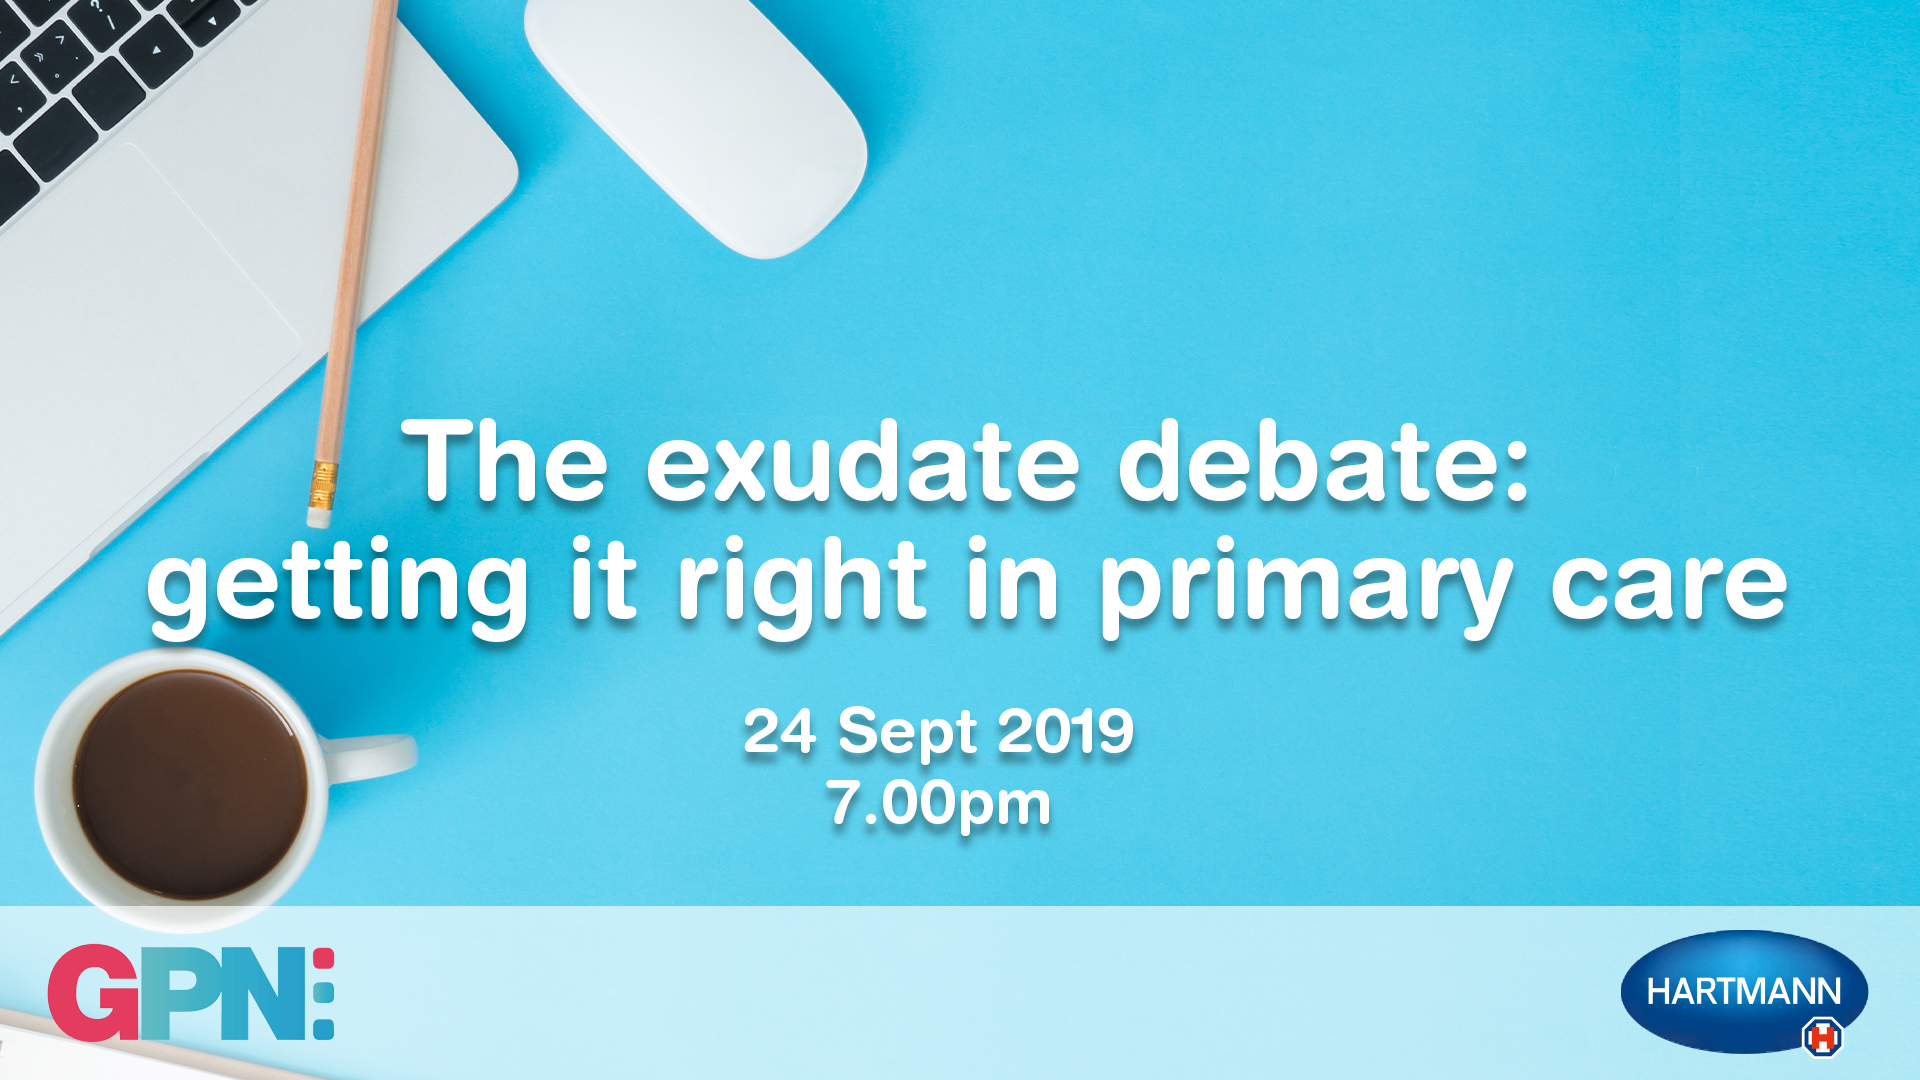 The exudate debate: getting it right in primary care